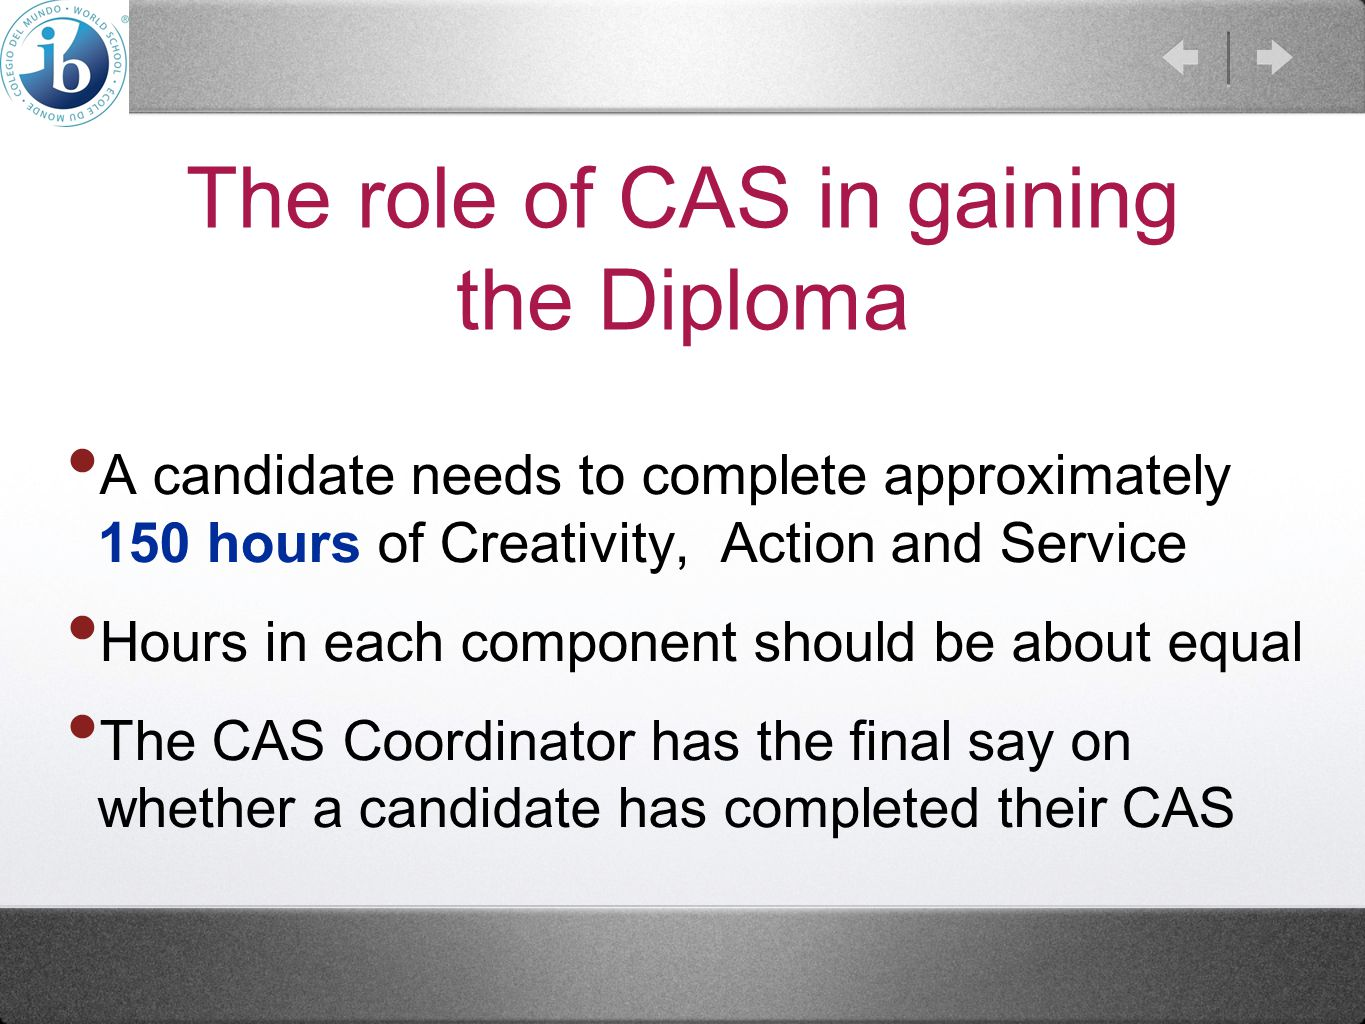 The role of CAS in gaining the Diploma